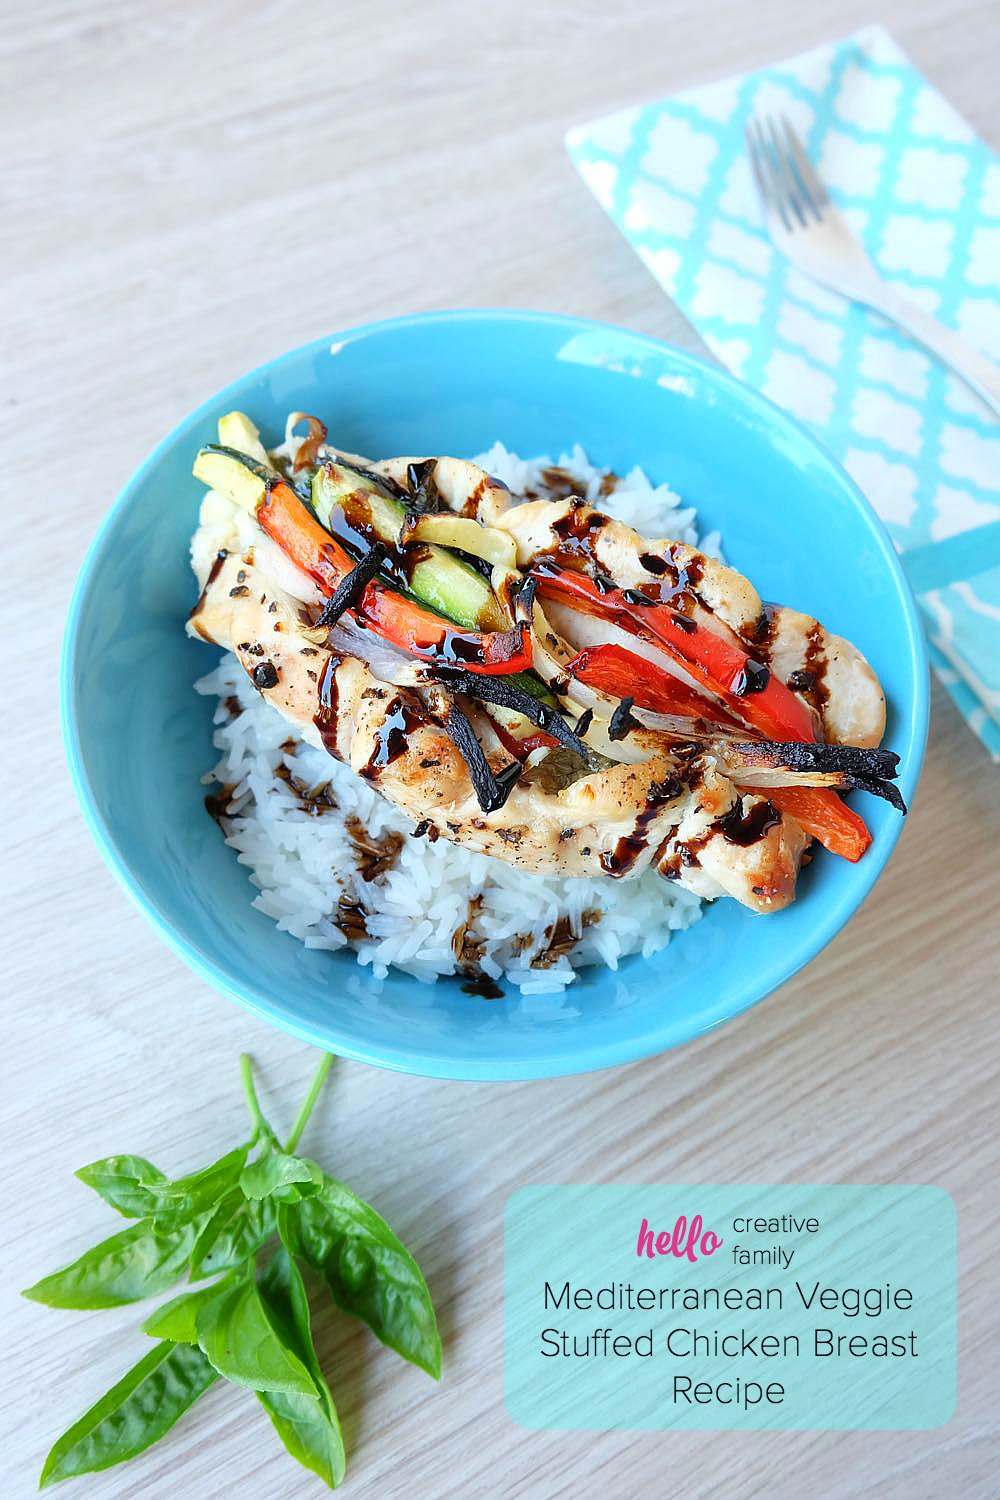 This delicious and flavorful meal, is a healthy, protein packed dinner choice that takes 30 minutes to make, making it a great weeknight meal idea! Even your kids will love this Mediterranean Veggie Stuffed Chicken Breast Recipe!